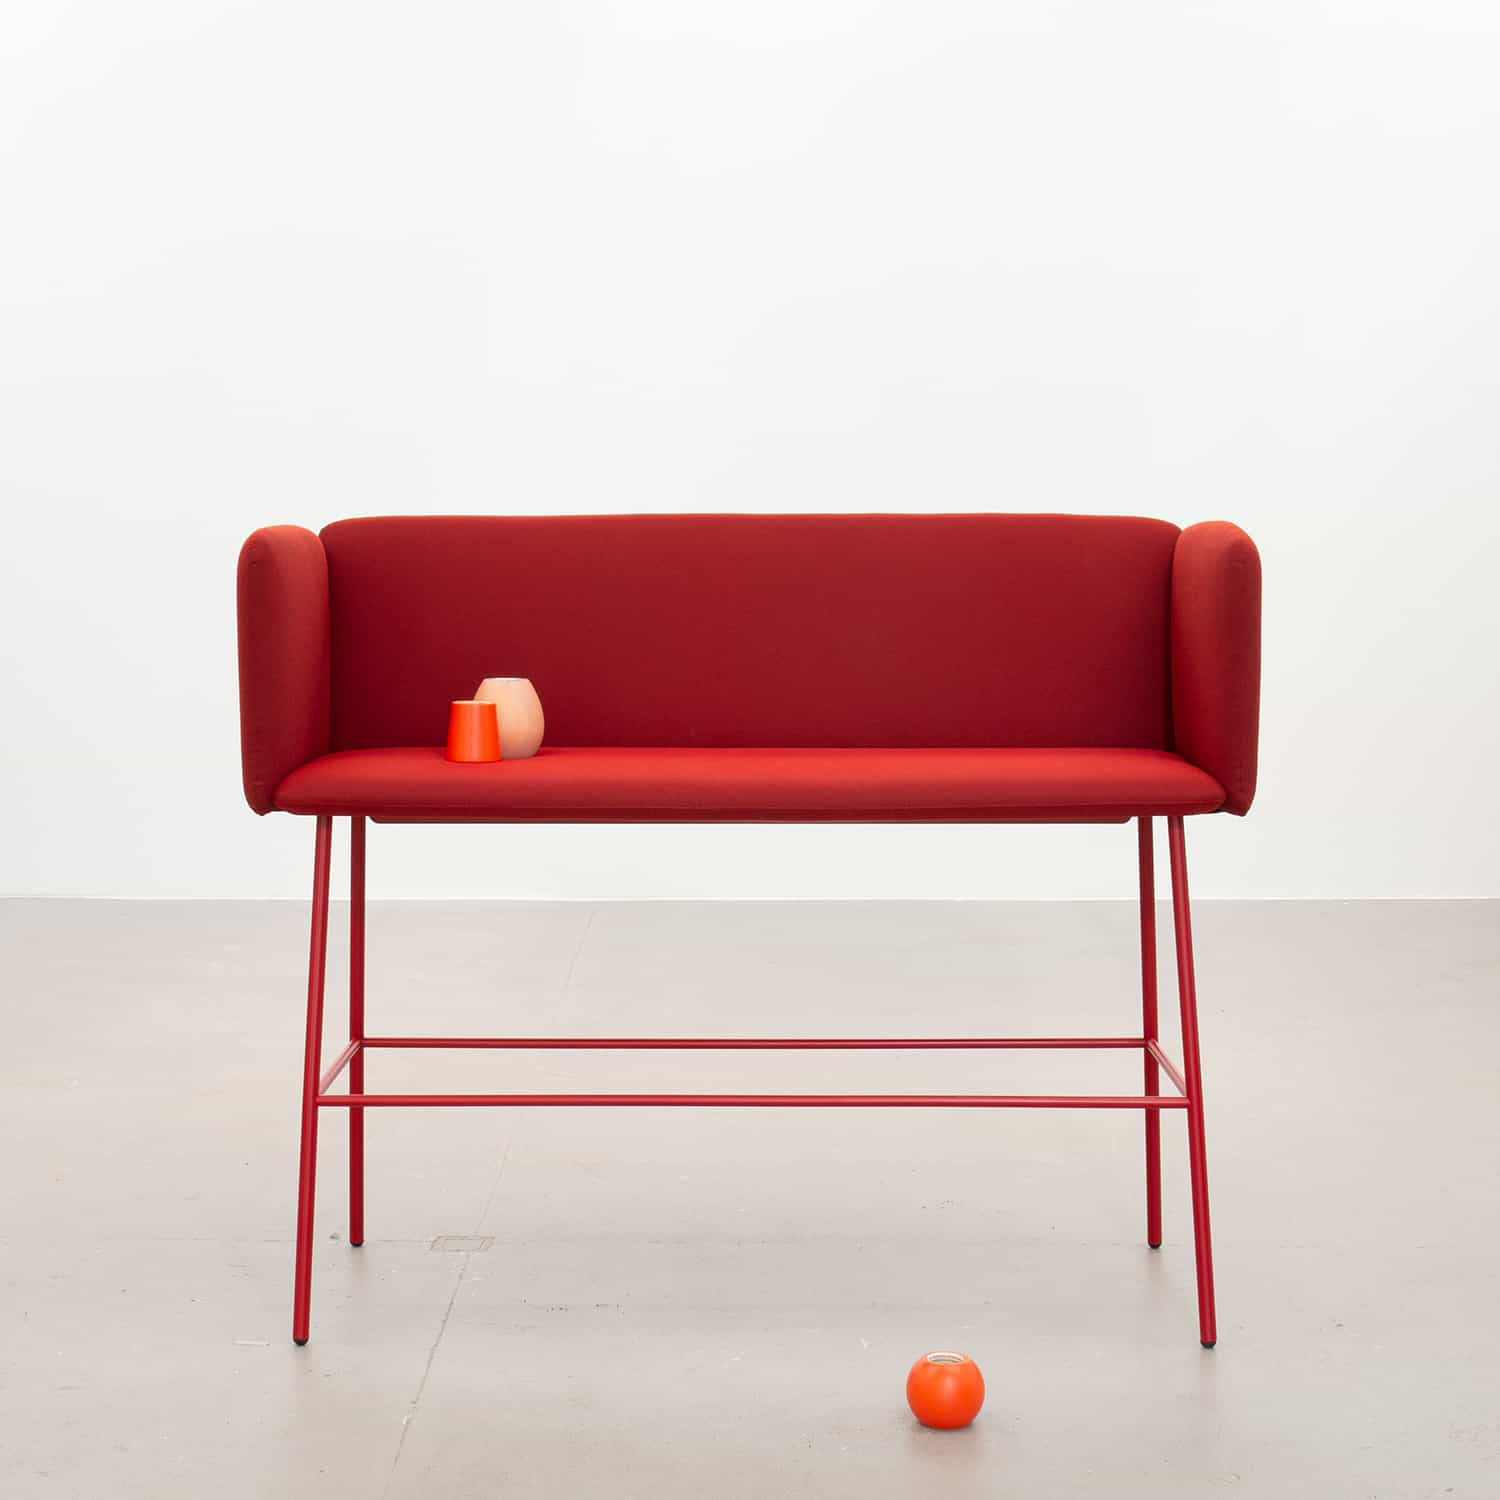 CUBIT - CHAISE - CHAIR